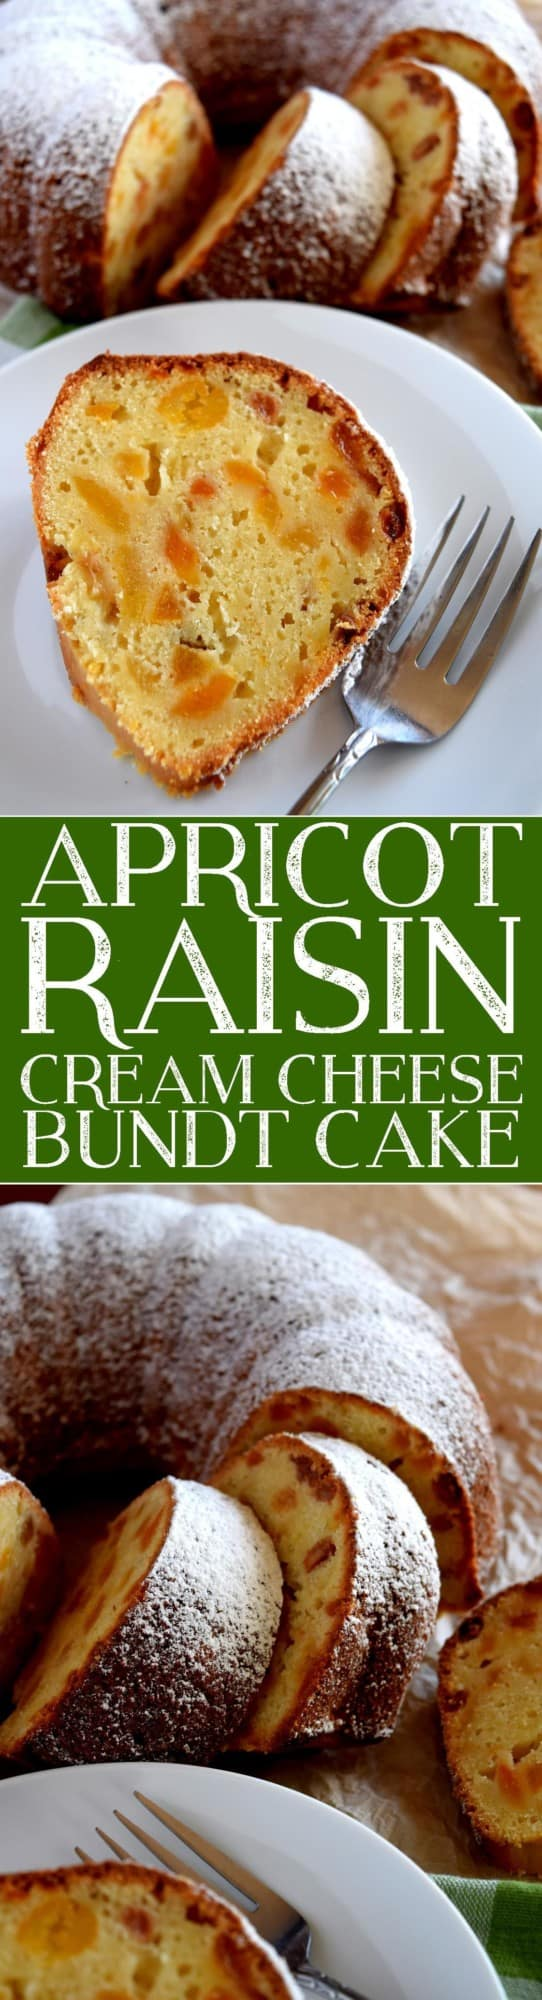 apricot-raisin-cream-cheese-bundt-cake